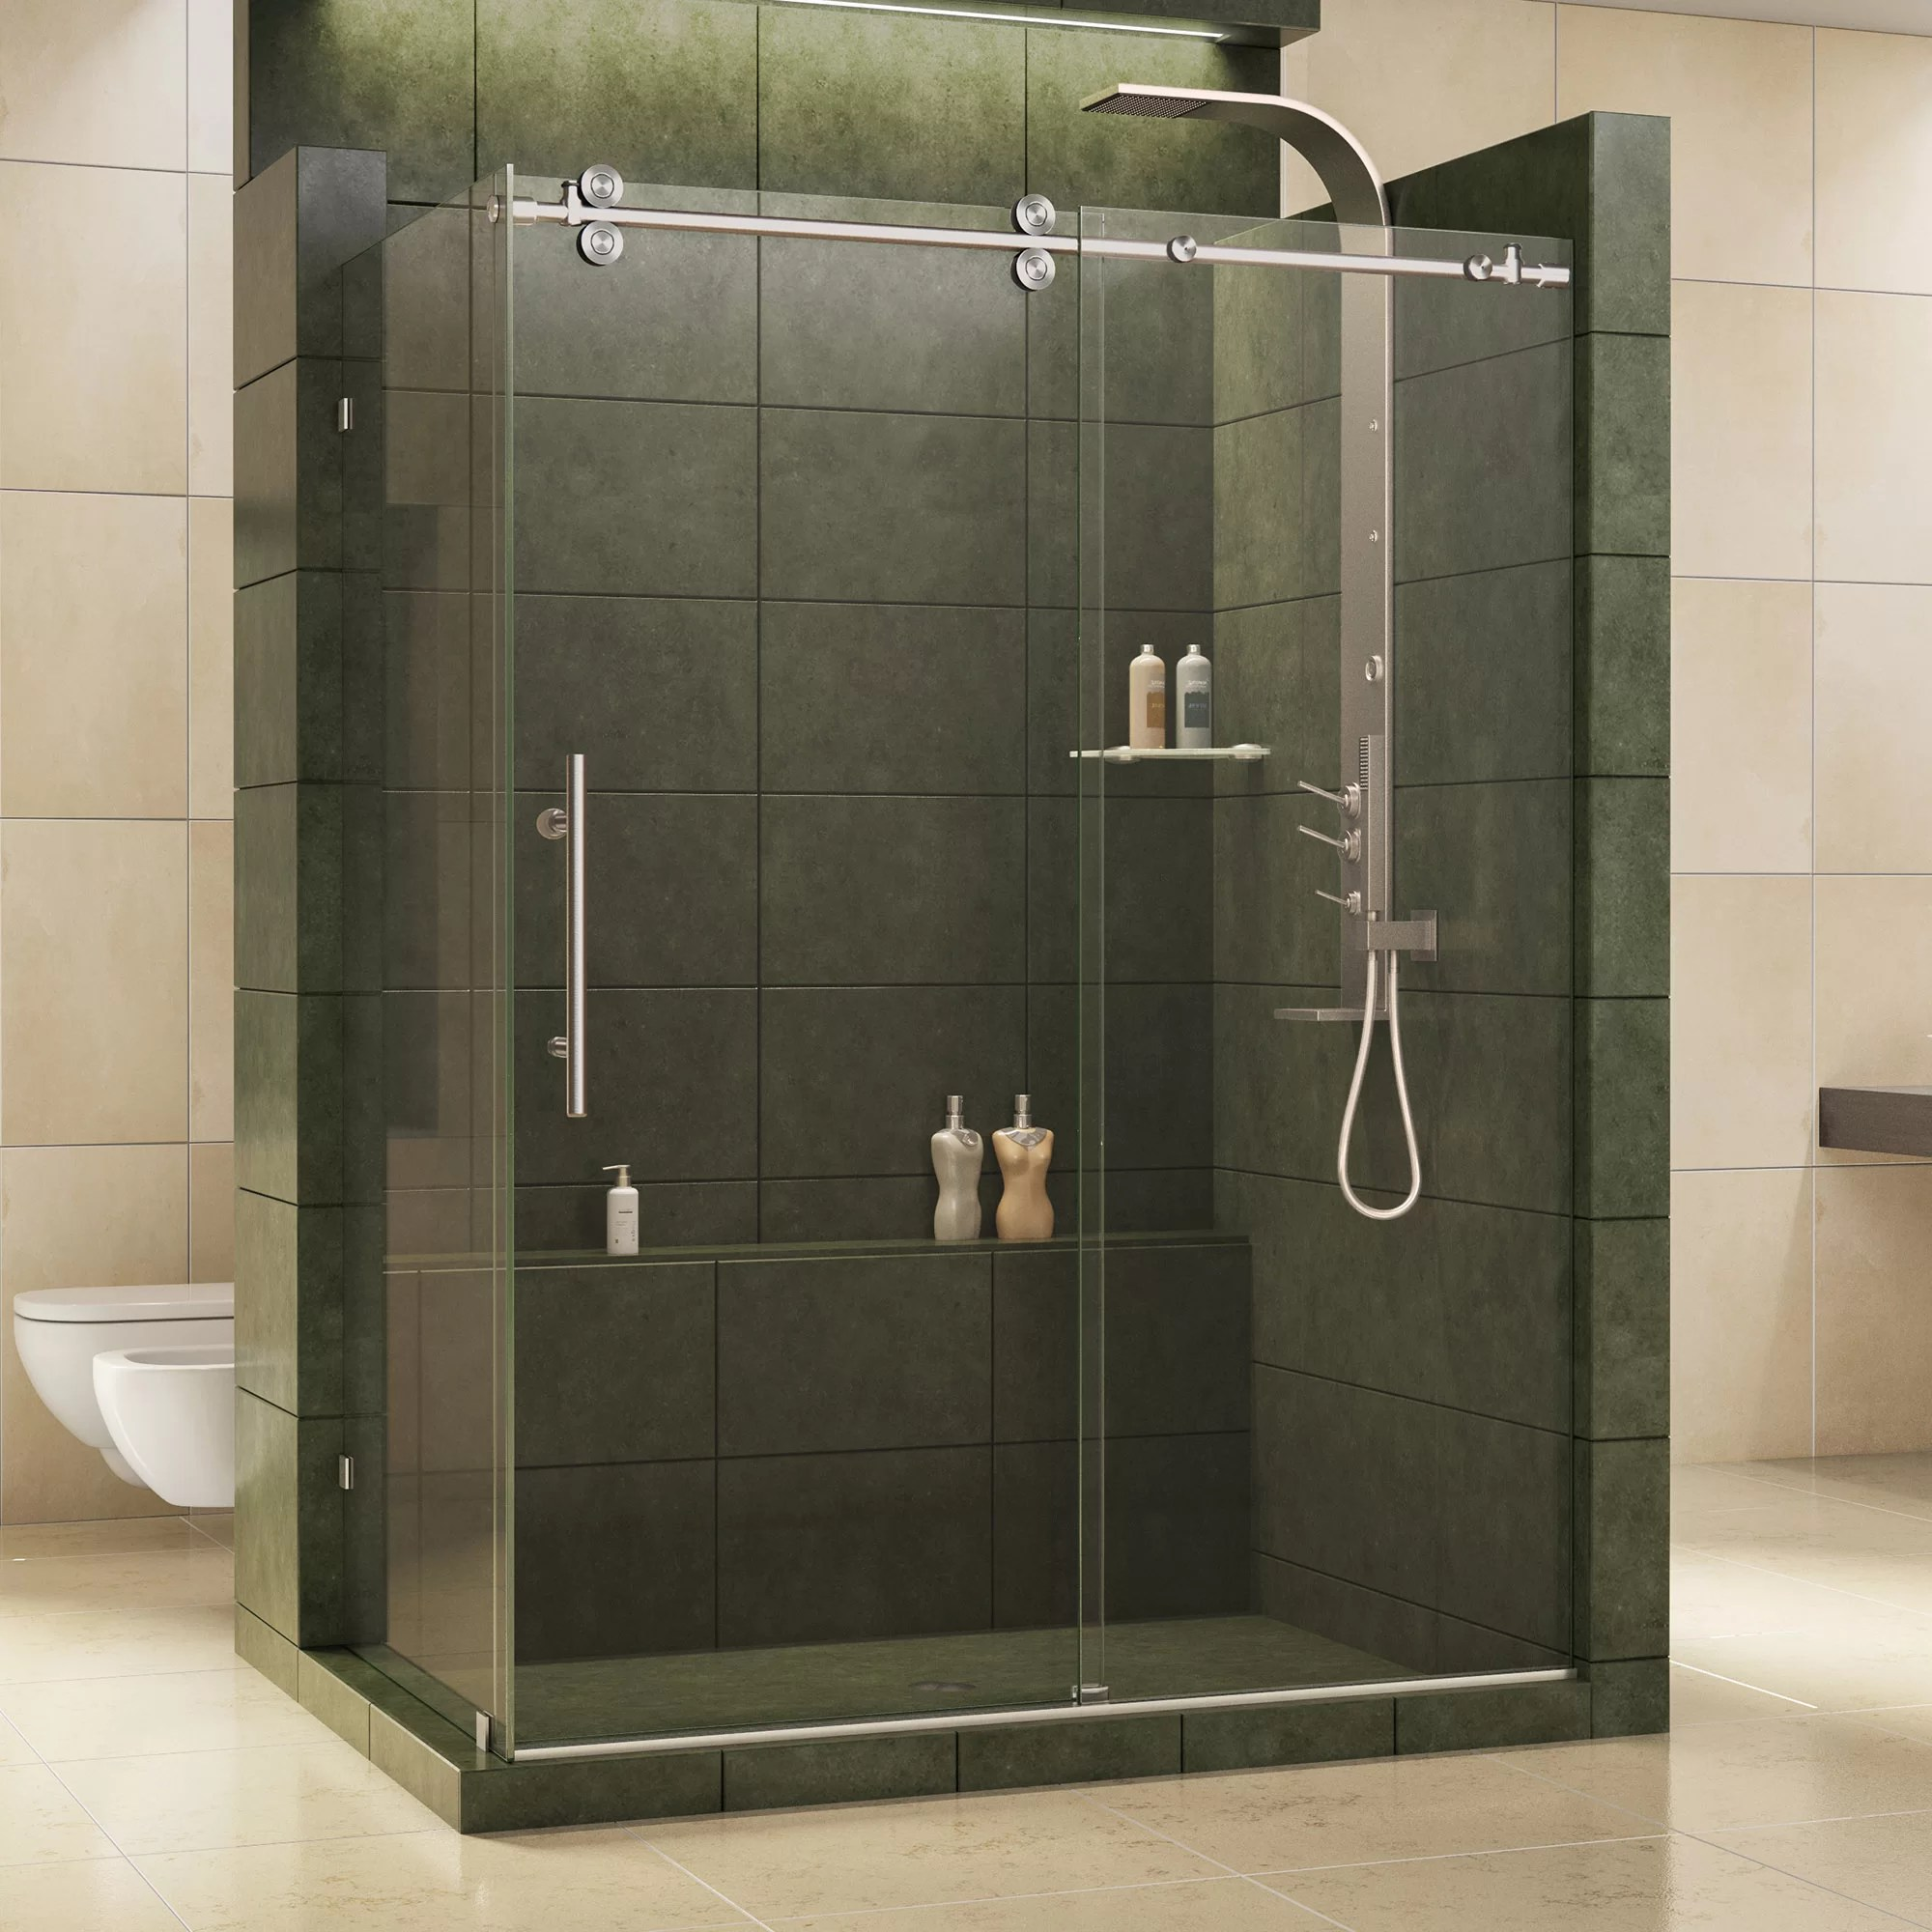 Enigma 60 5 X 79 Single Sliding Frameless Shower Door With Clearmax Technology